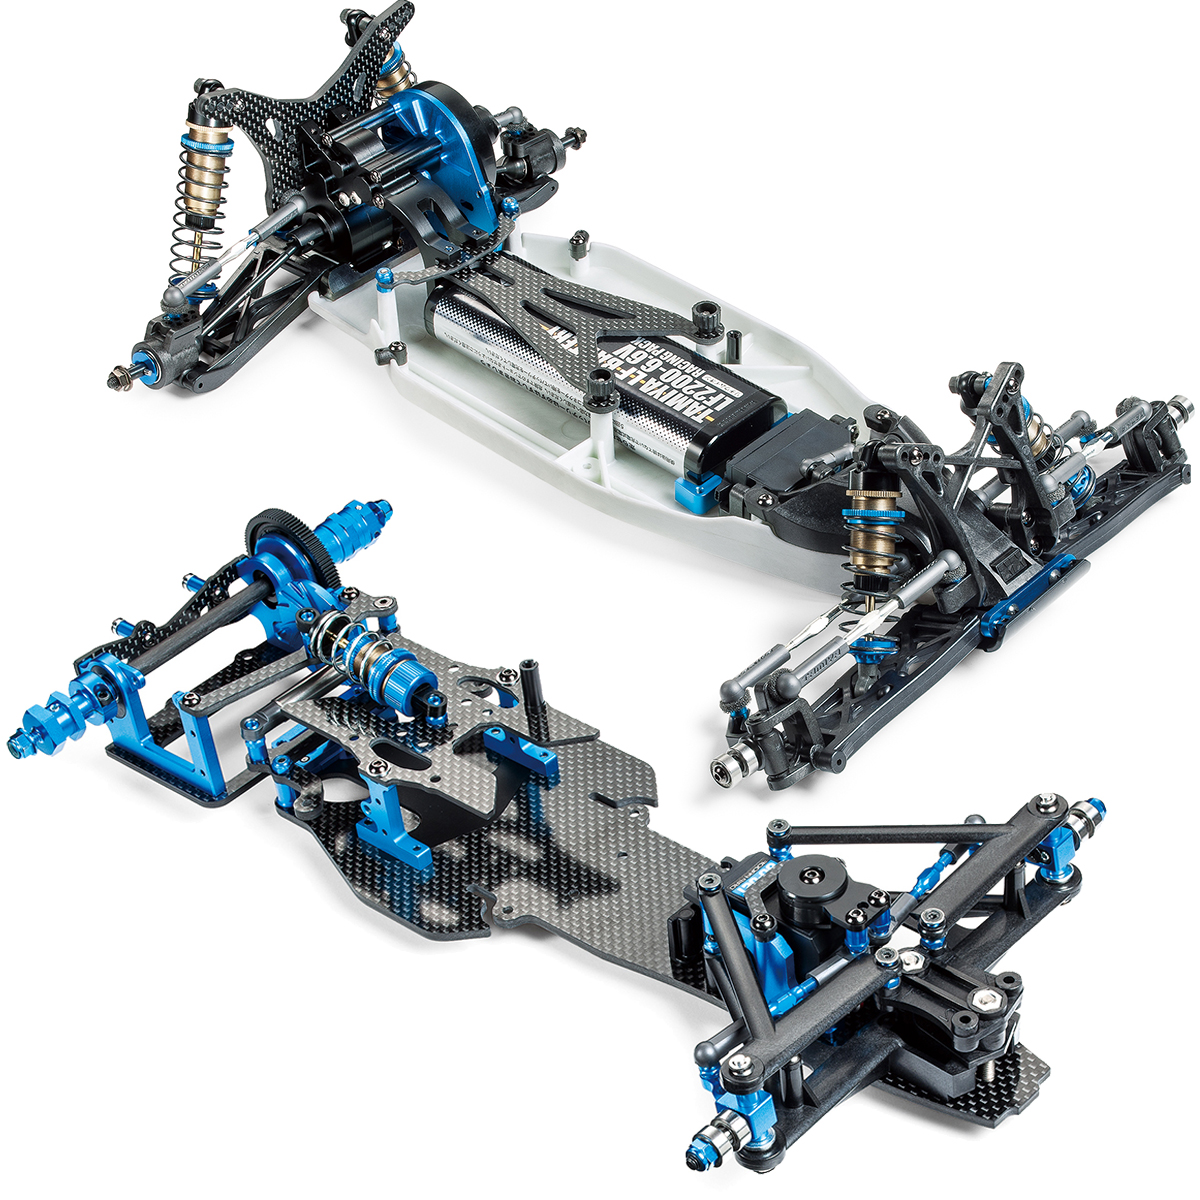 Tamiya Unveils New TRF 2WD Buggy and F1 Chassis Kits